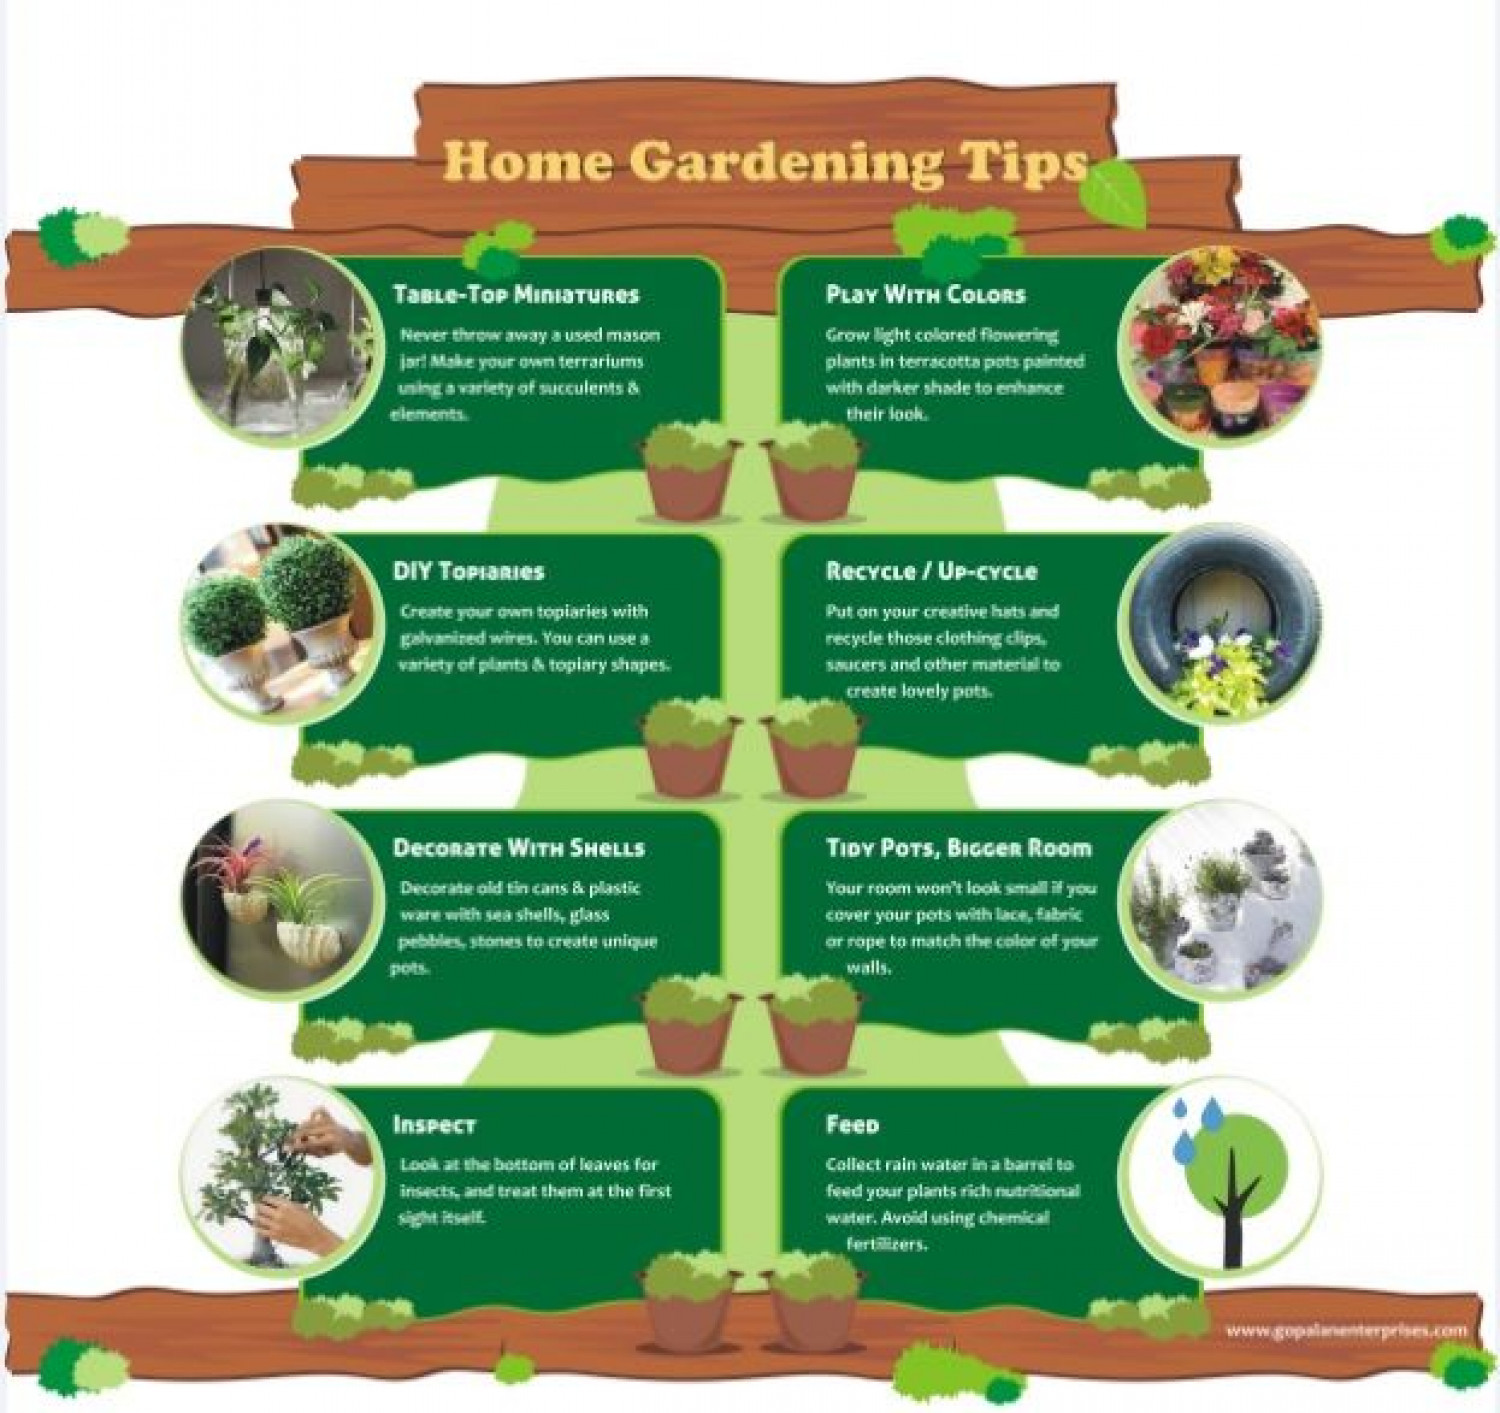 Properties in bangalore home gardening tips for House architecture design garden advice